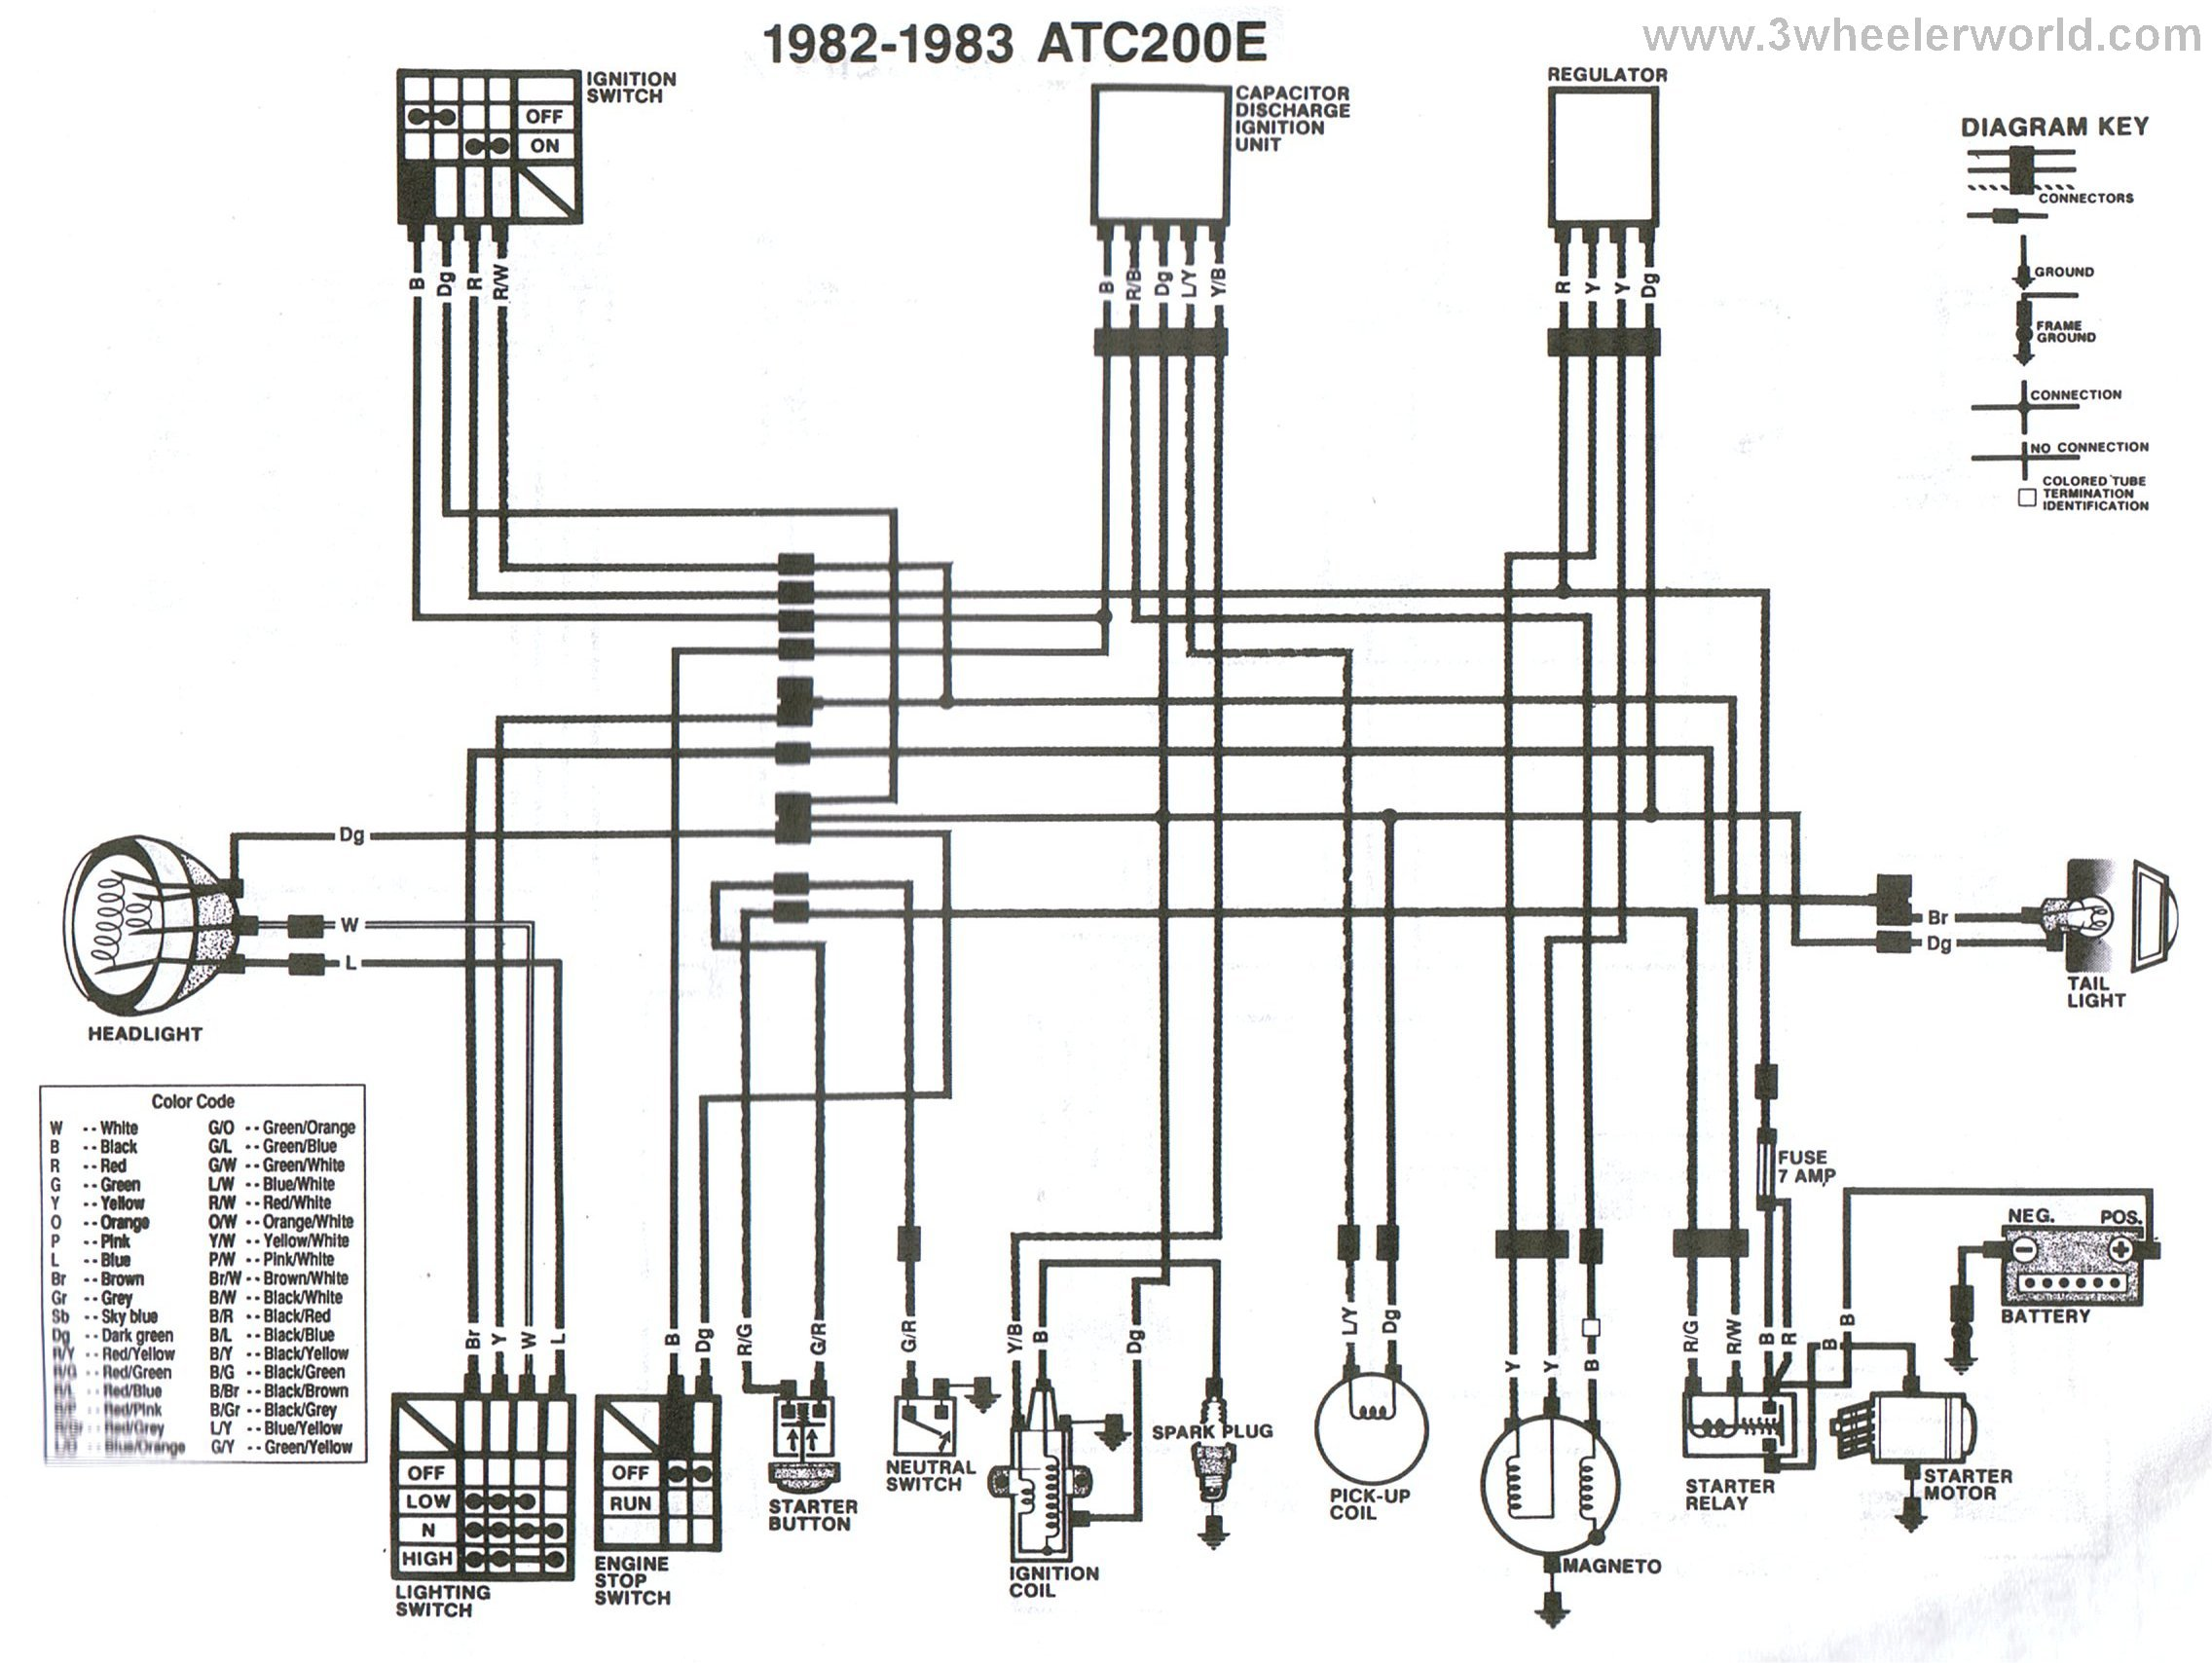 ATC200Ex82Thru83 3 wheeler world tech help honda wiring diagrams 1983 honda atc 200 wiring diagram at webbmarketing.co